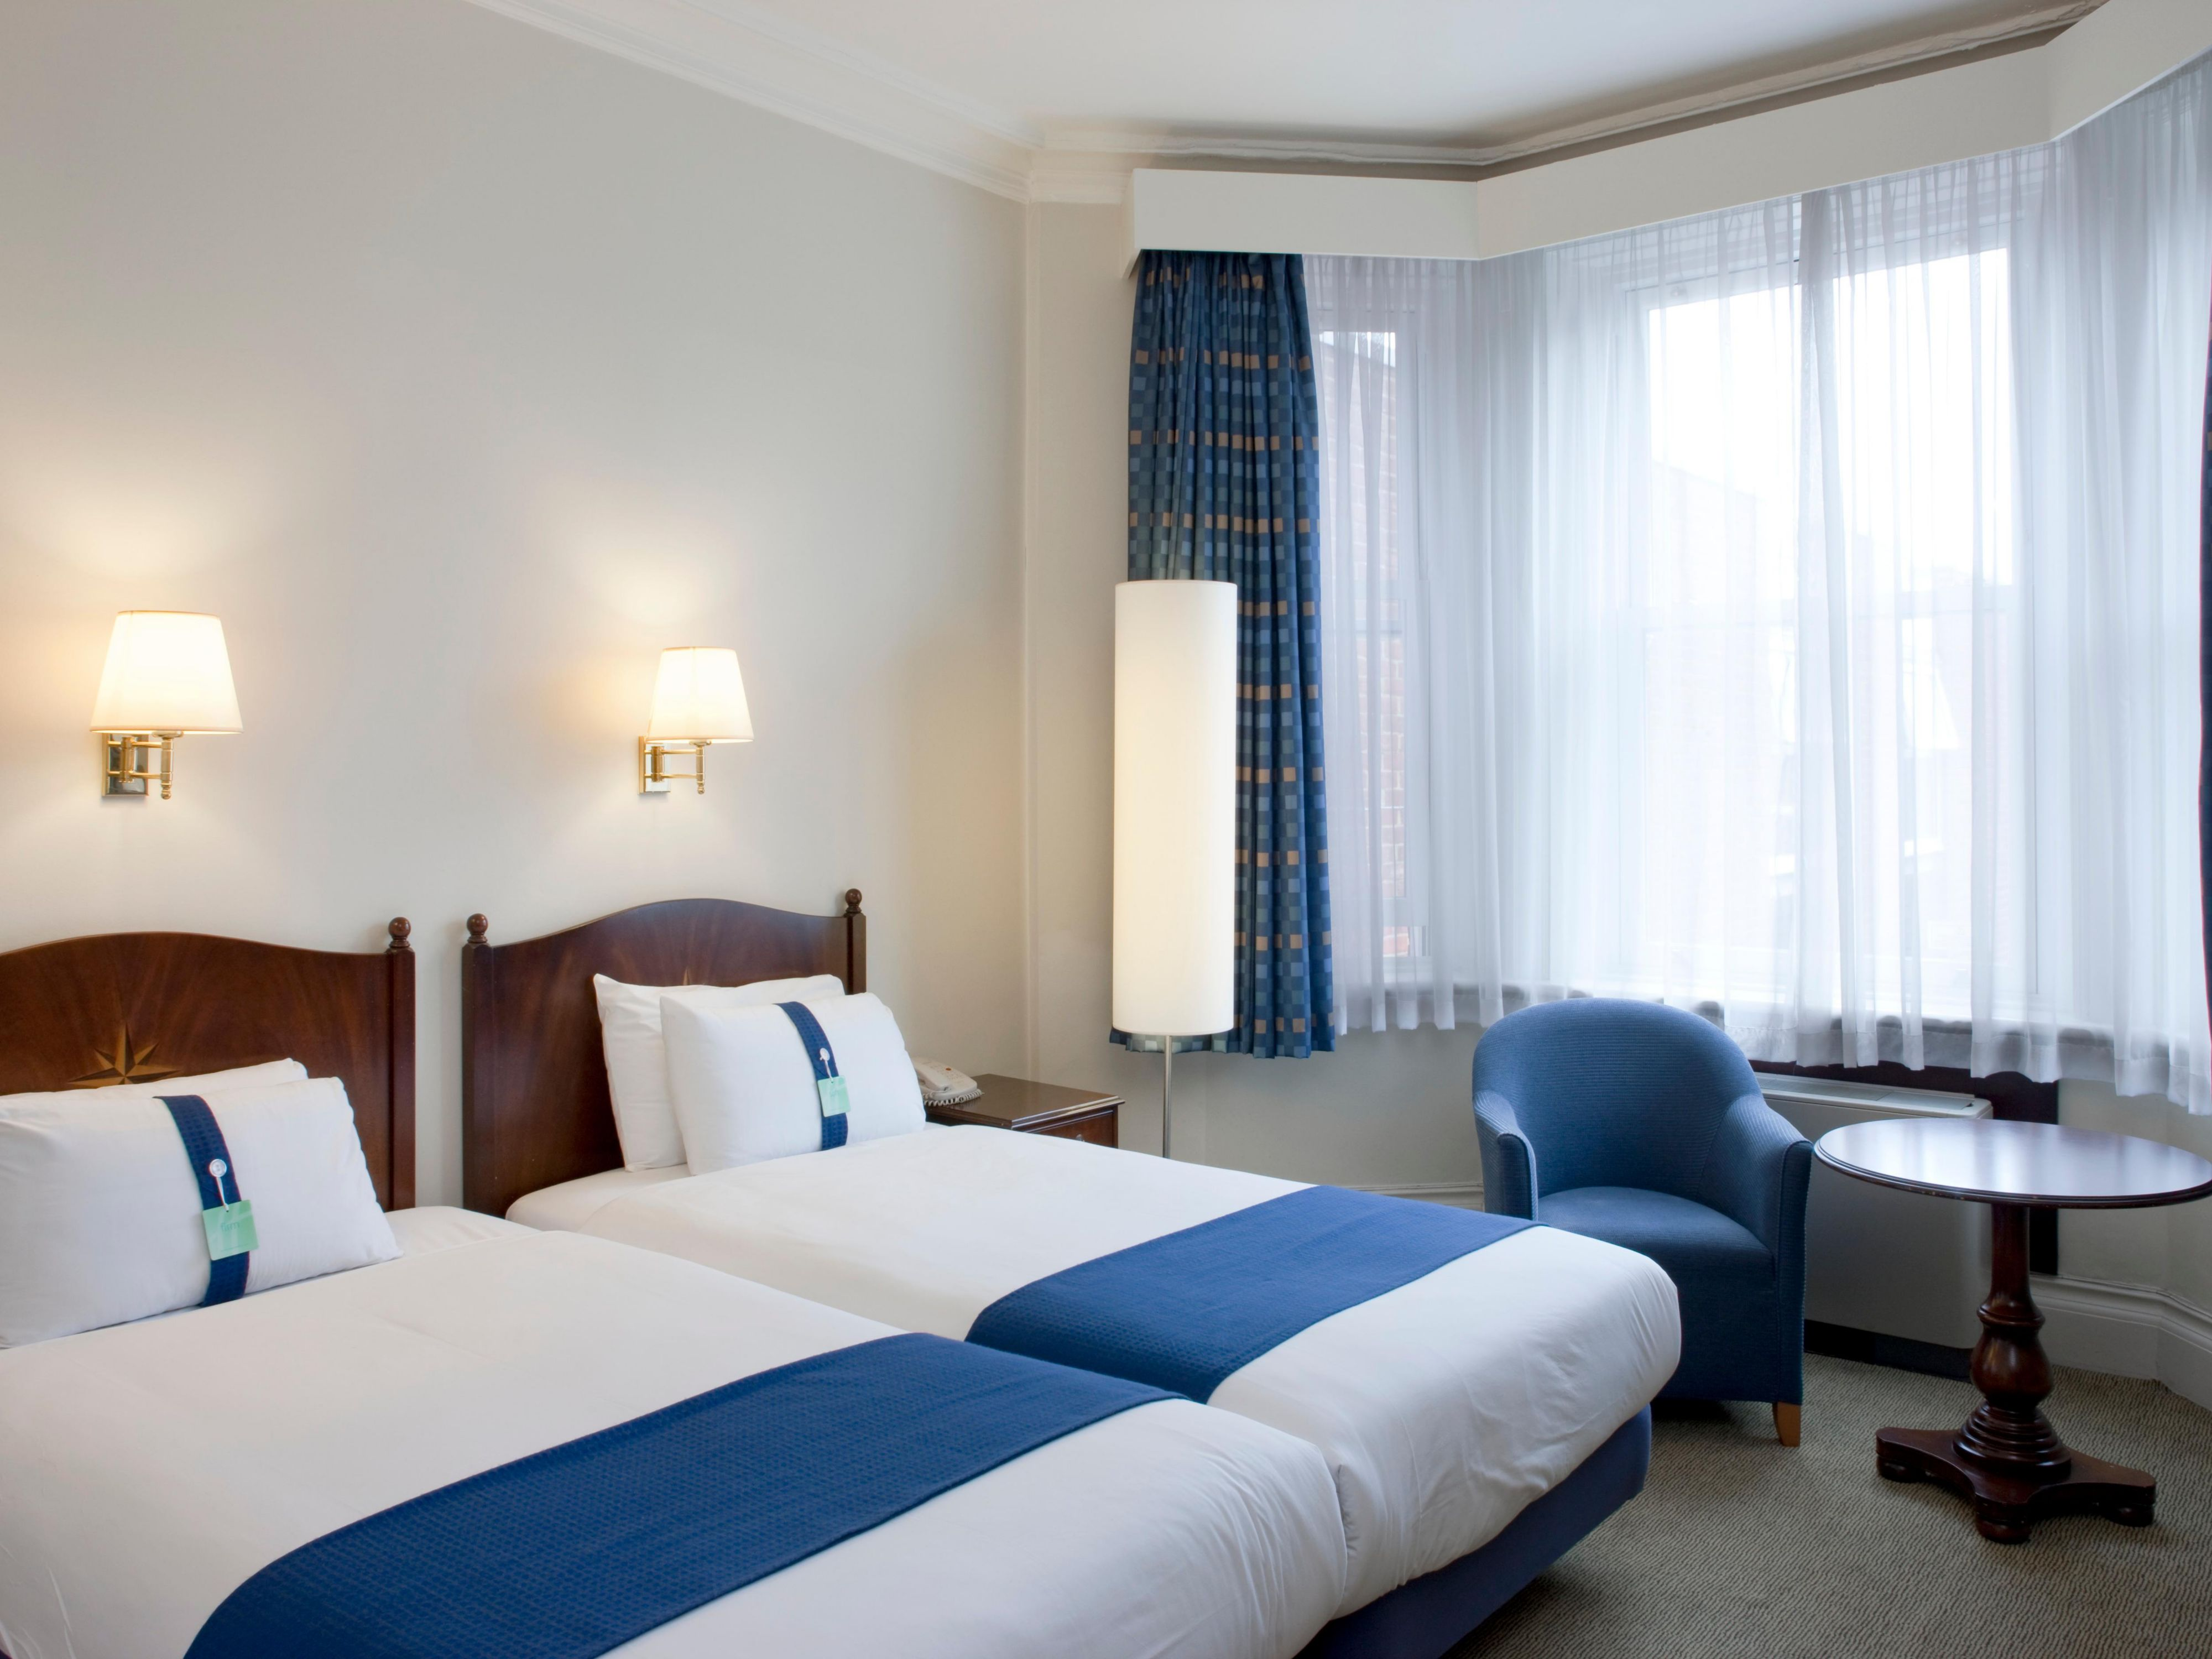 Perfect for sharing, our twin bedded room